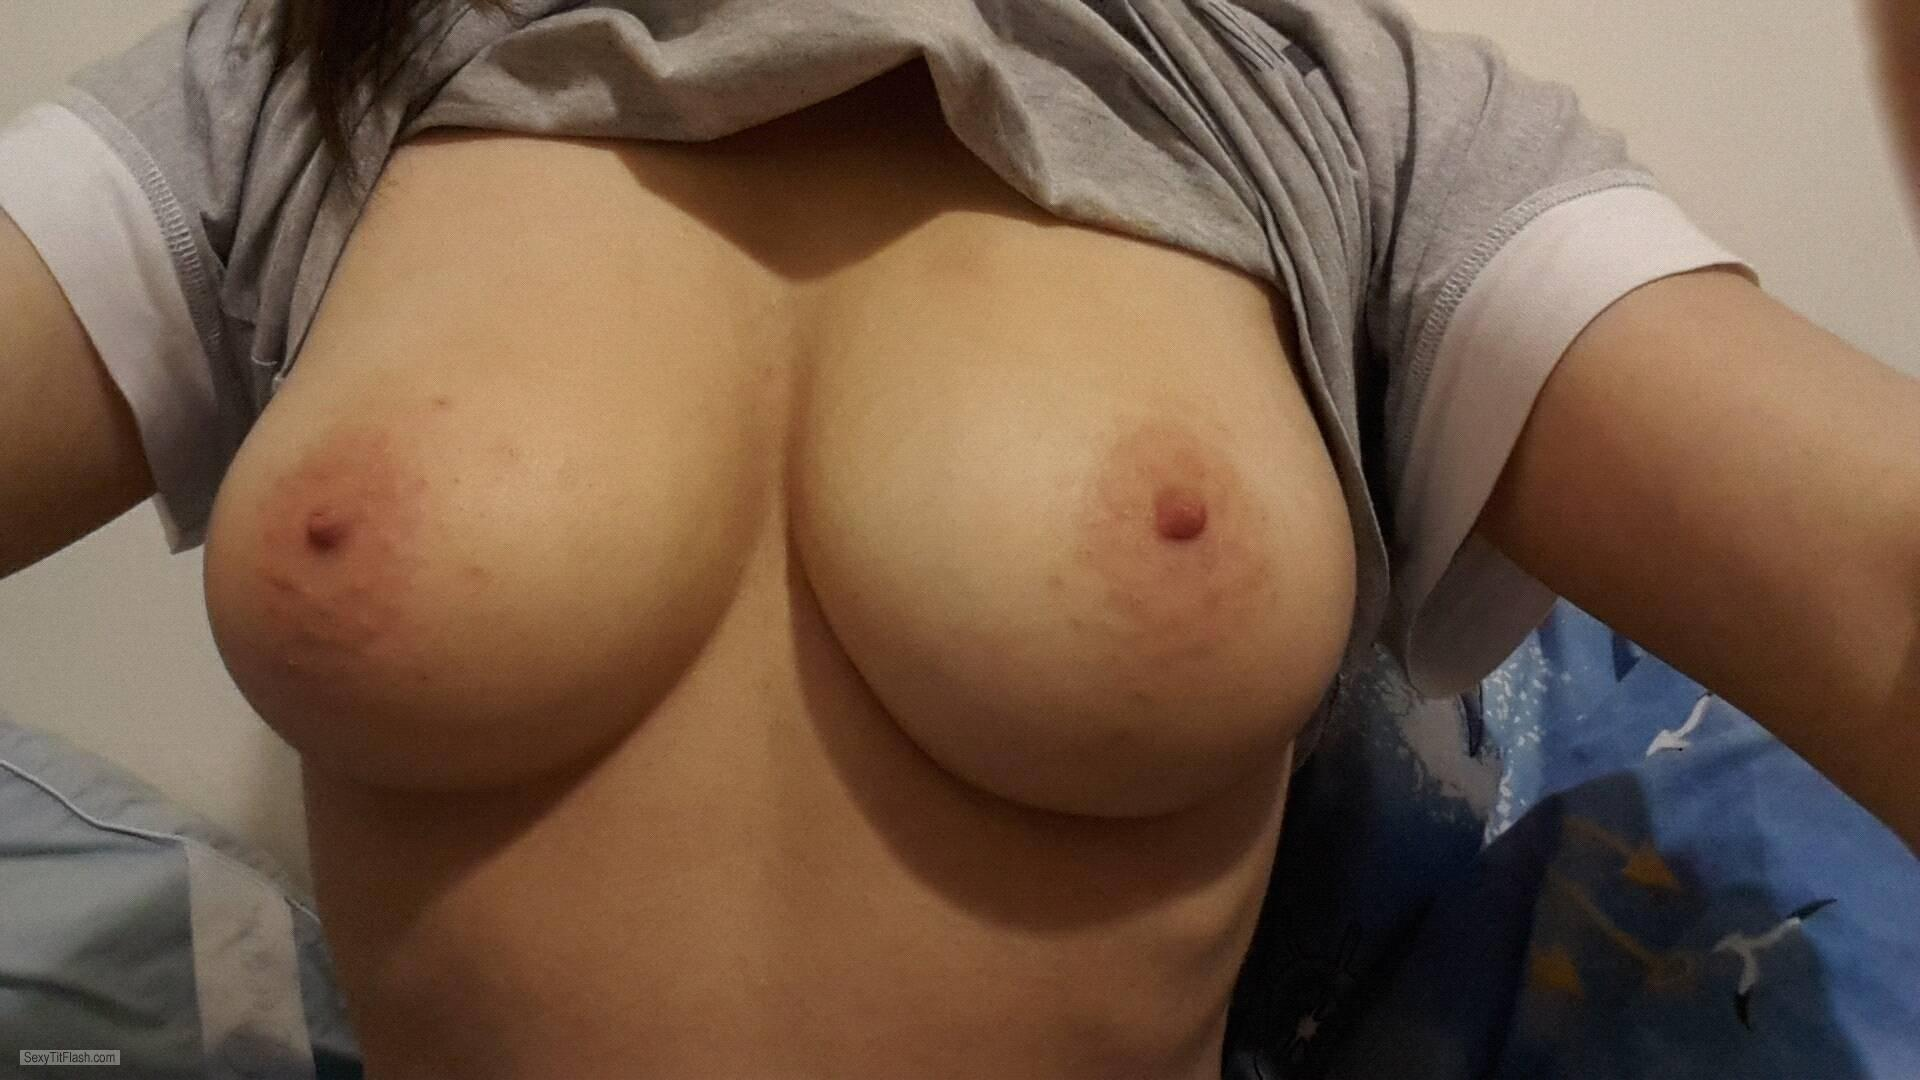 Big Tits Of My Ex-Girlfriend Topless Selfie by Loomcat